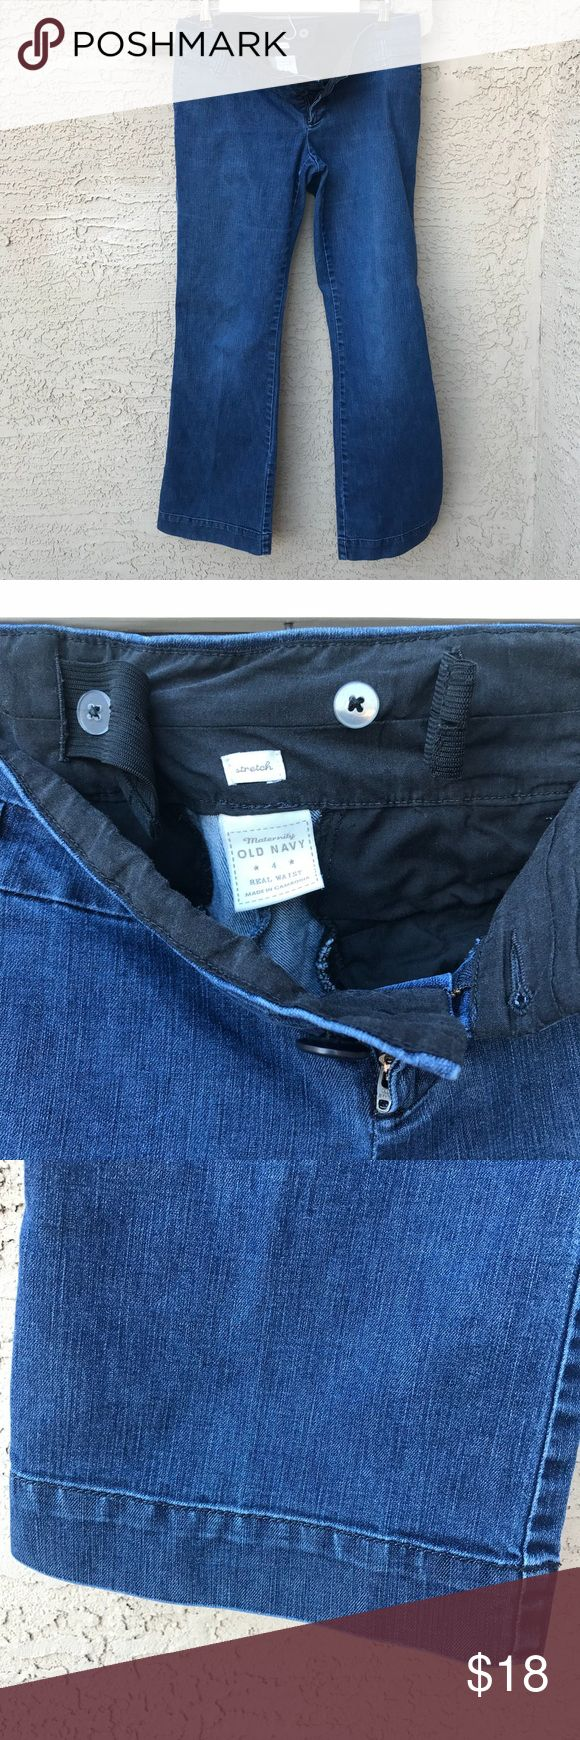 Old Navy Maternity Jeans Size 4 -Elastic + Buttons 🤰🏻Good Used Condition GUC Maternity jeans from Old Navy. Maternity Size 4 with sewn-in elastic bands that adjust to buttons. Boot-cut denim in great shape; tags and upper part in good shape. They aren't fancy but are a great basic pair of jeans during your pregnancy!🤰🏻  ************************ 🧐 Inspect photos ❓Ask questions  👗👗Create bundles 📷 Photo props not included 🚫Smoke-free, Pet-free 🌮Thanks for lookin'!  © 2018 YUNADEE…